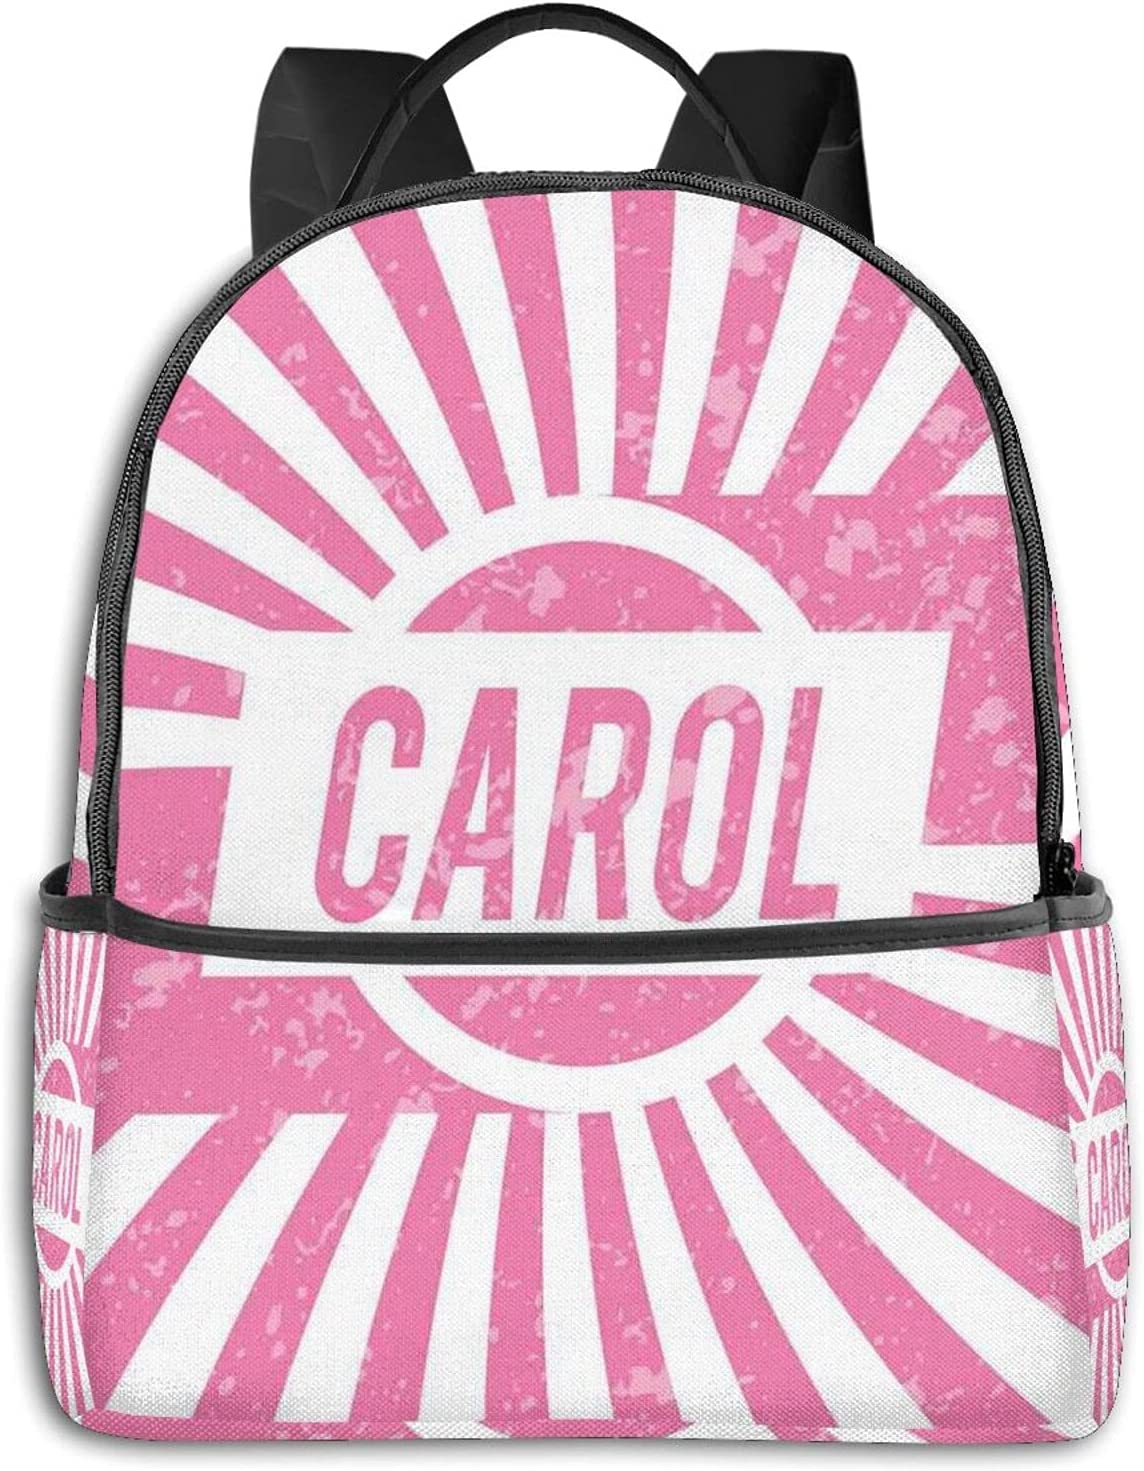 Graphic Popular Name Design For Pastel Kid Children Al sold out. Girls Colors Max 67% OFF